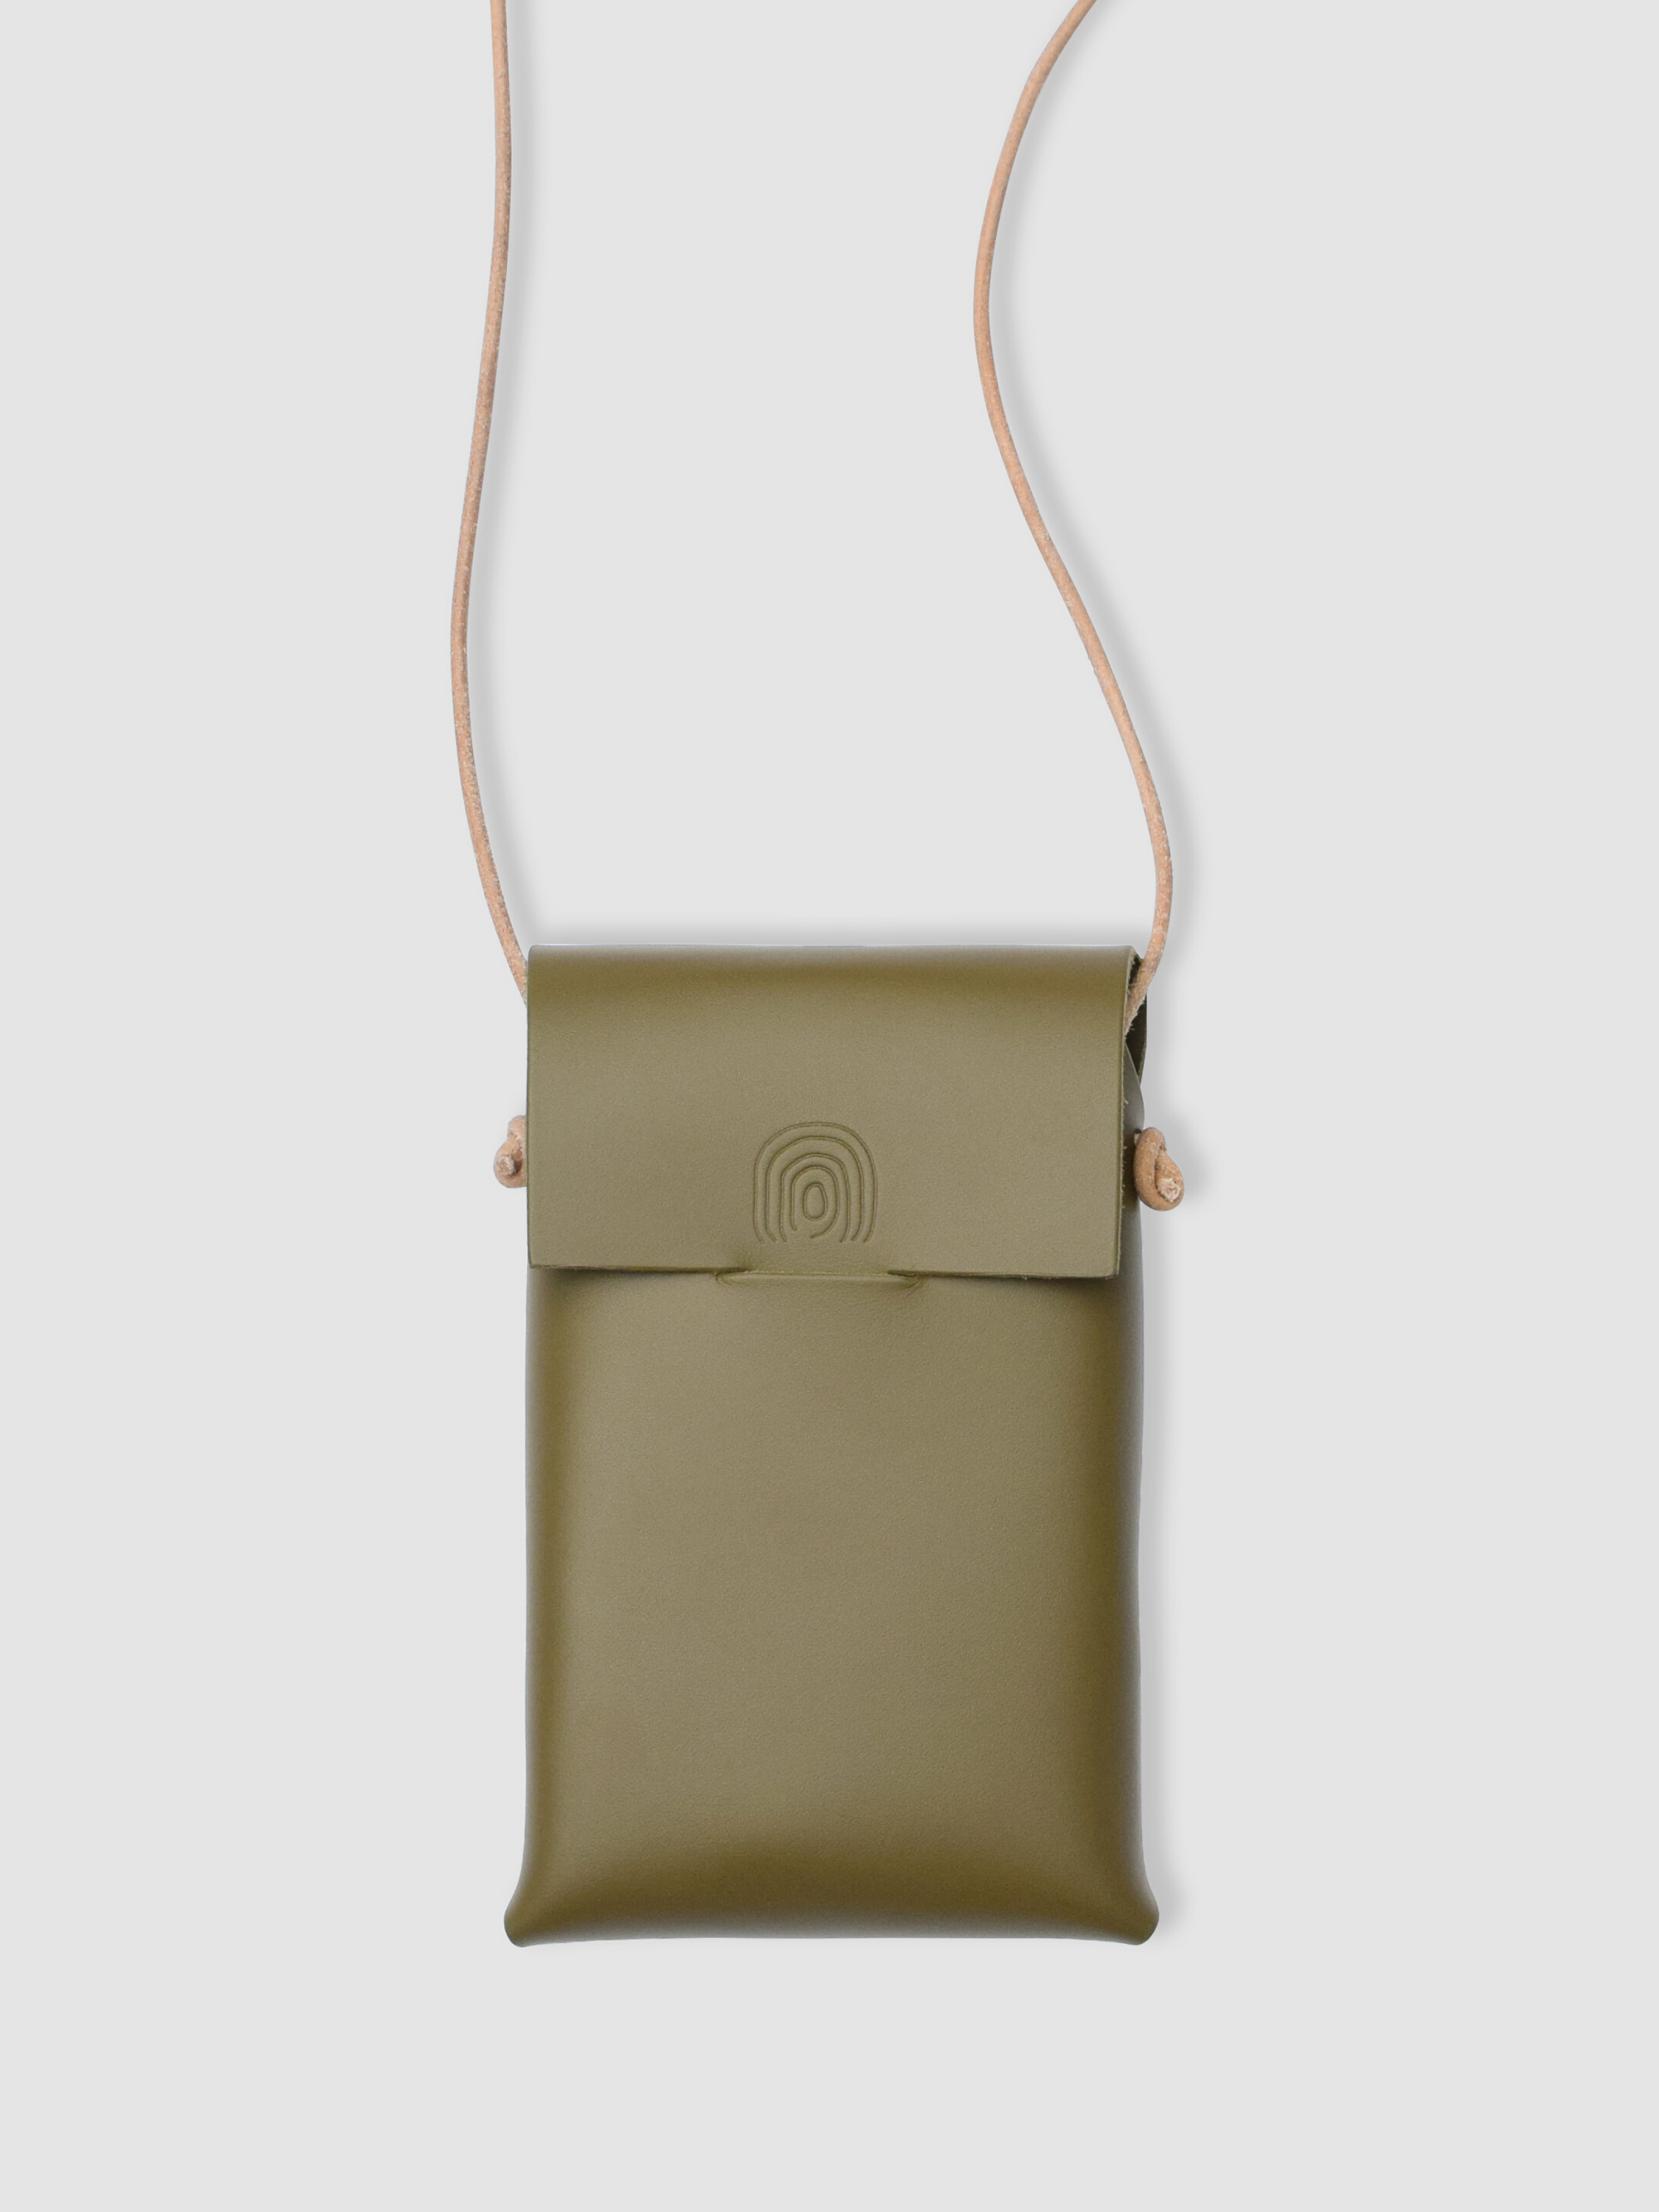 midi case - Alfie Douglas - minimal leather bags backpacks handmade in England